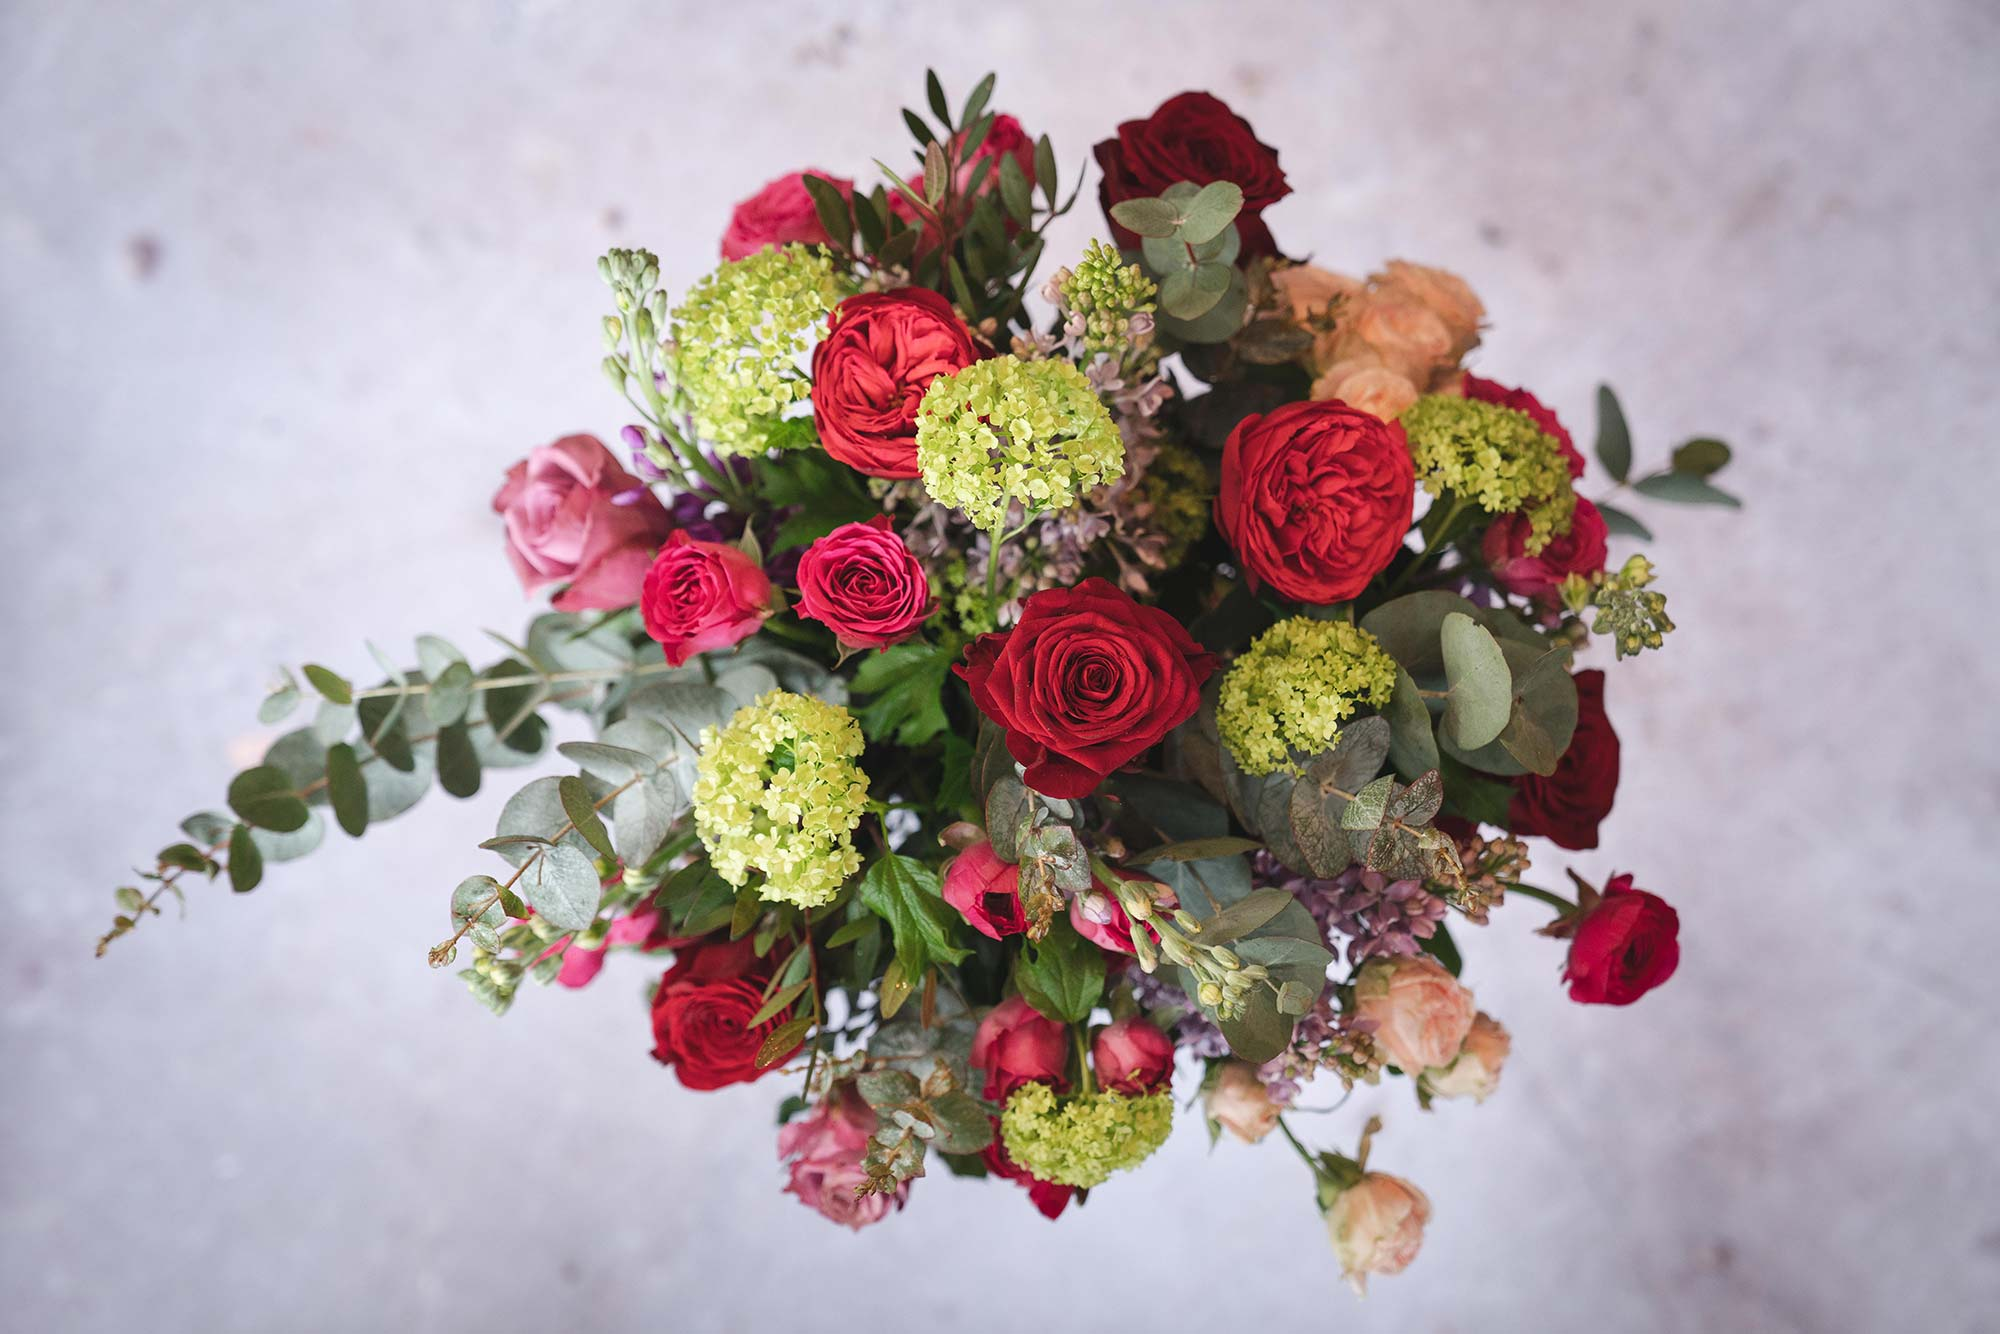 Vibrant Romance flower bouquet